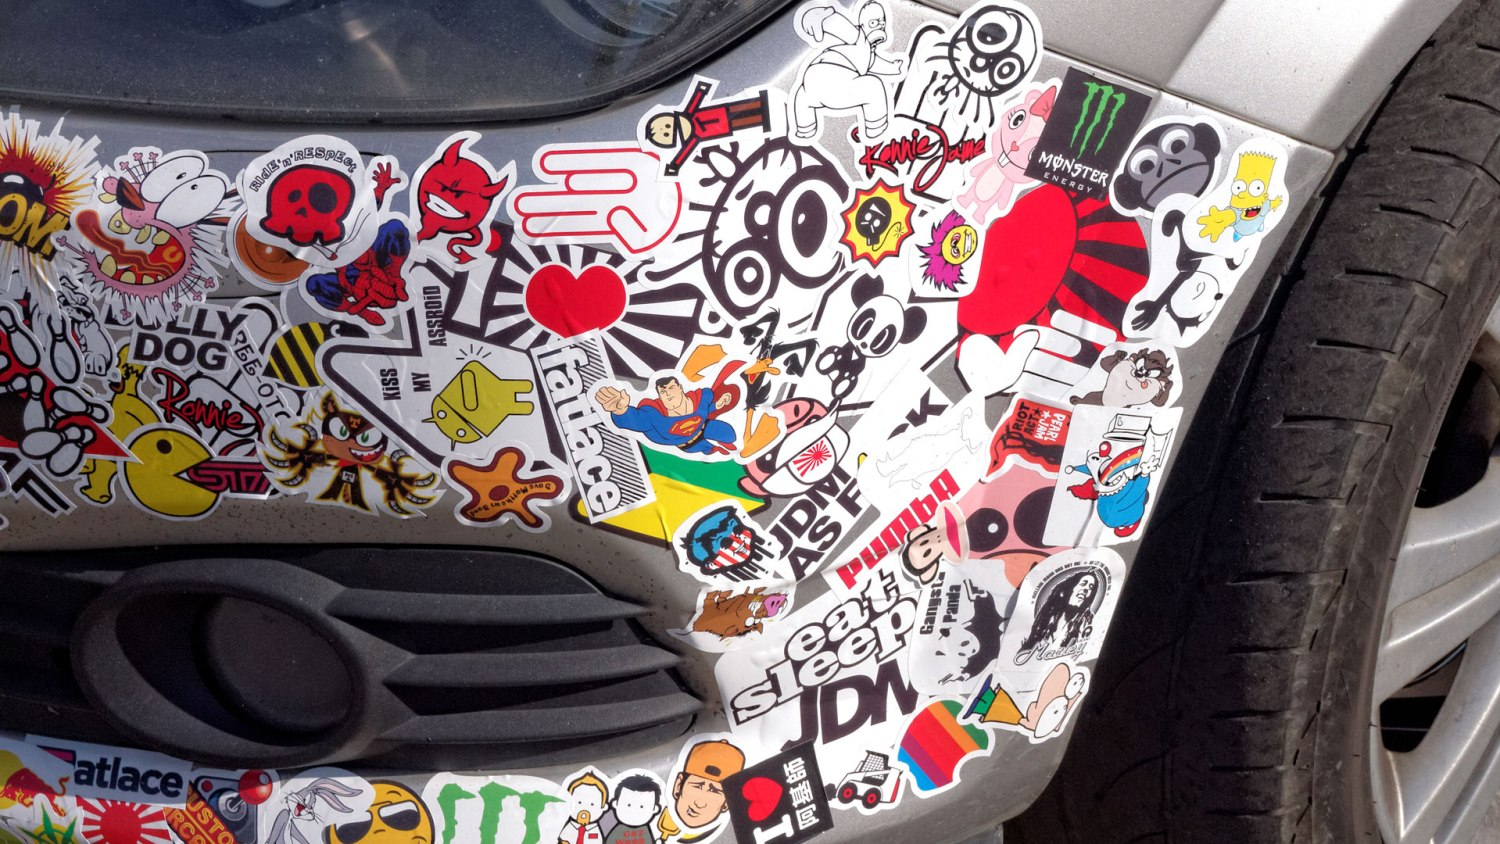 Most stickers on a car